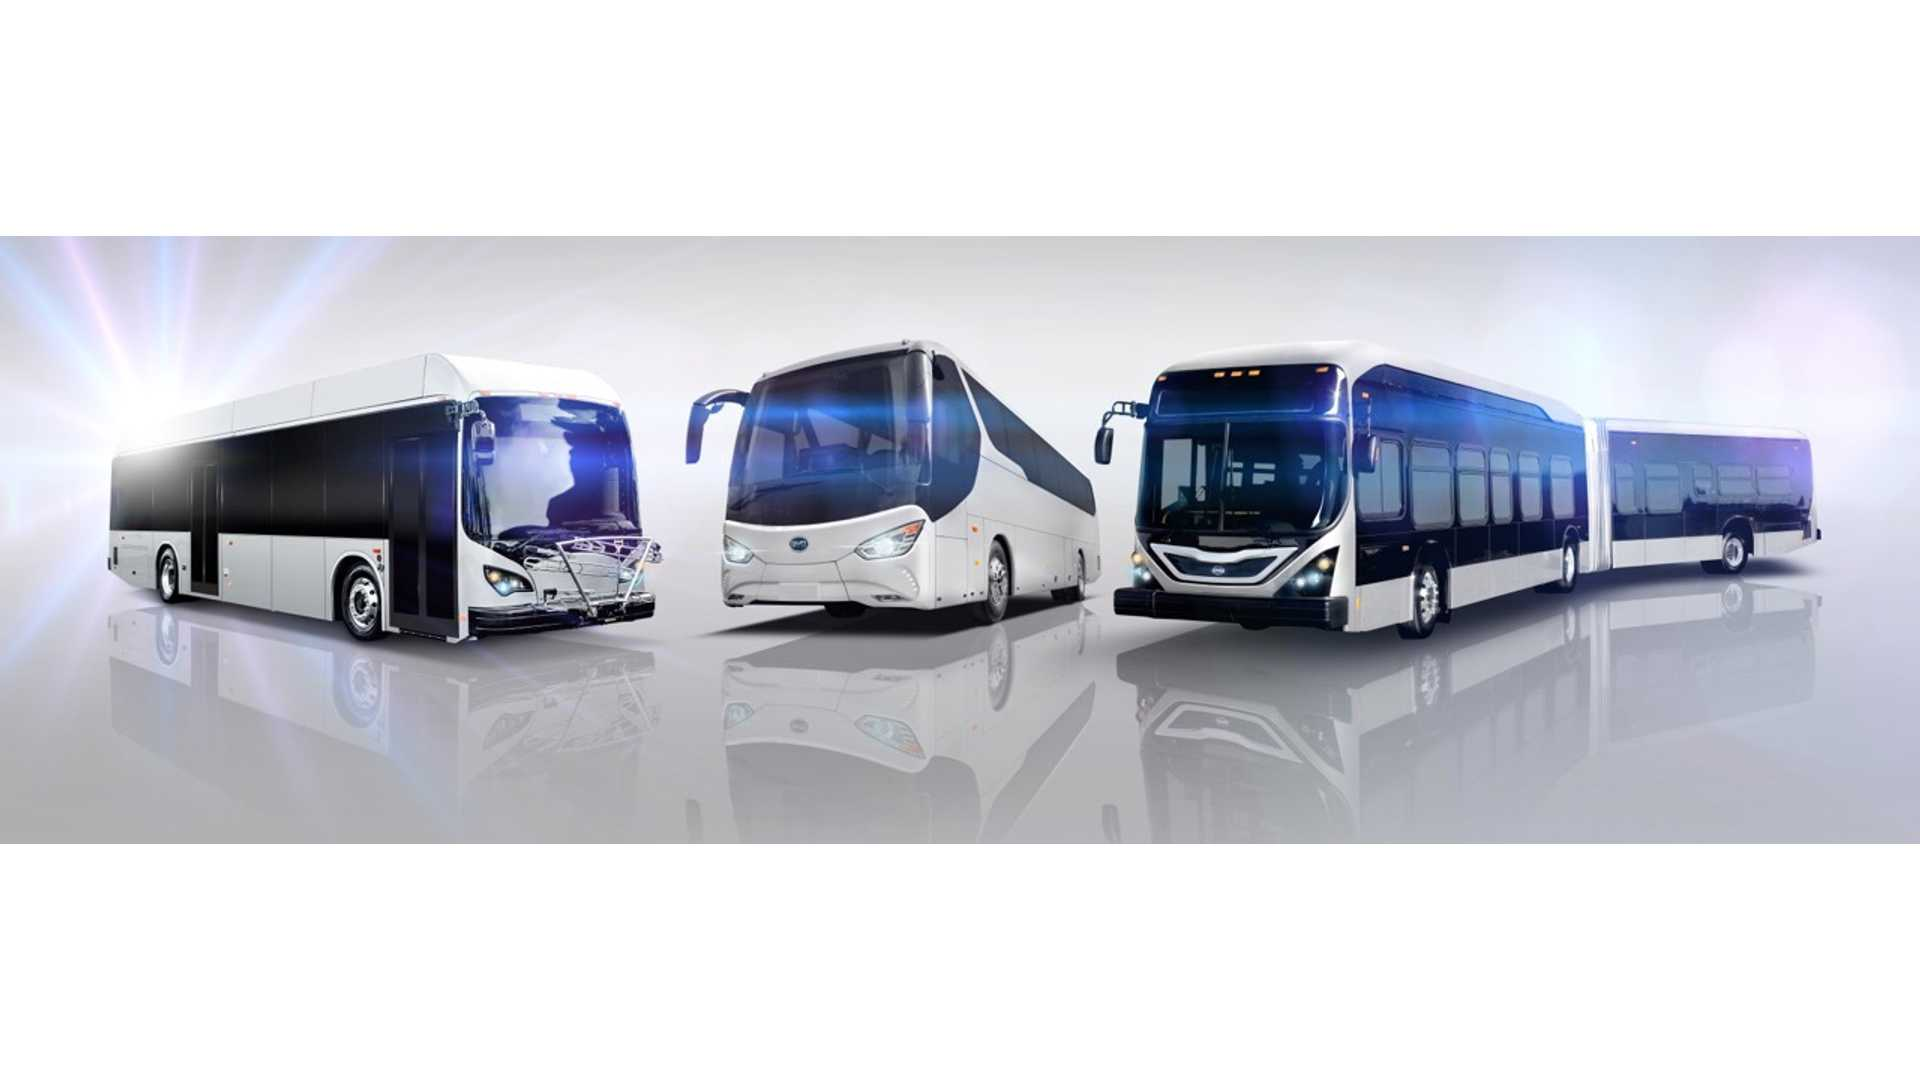 AVTA to Become America's First 100% Electric Bus Fleet By